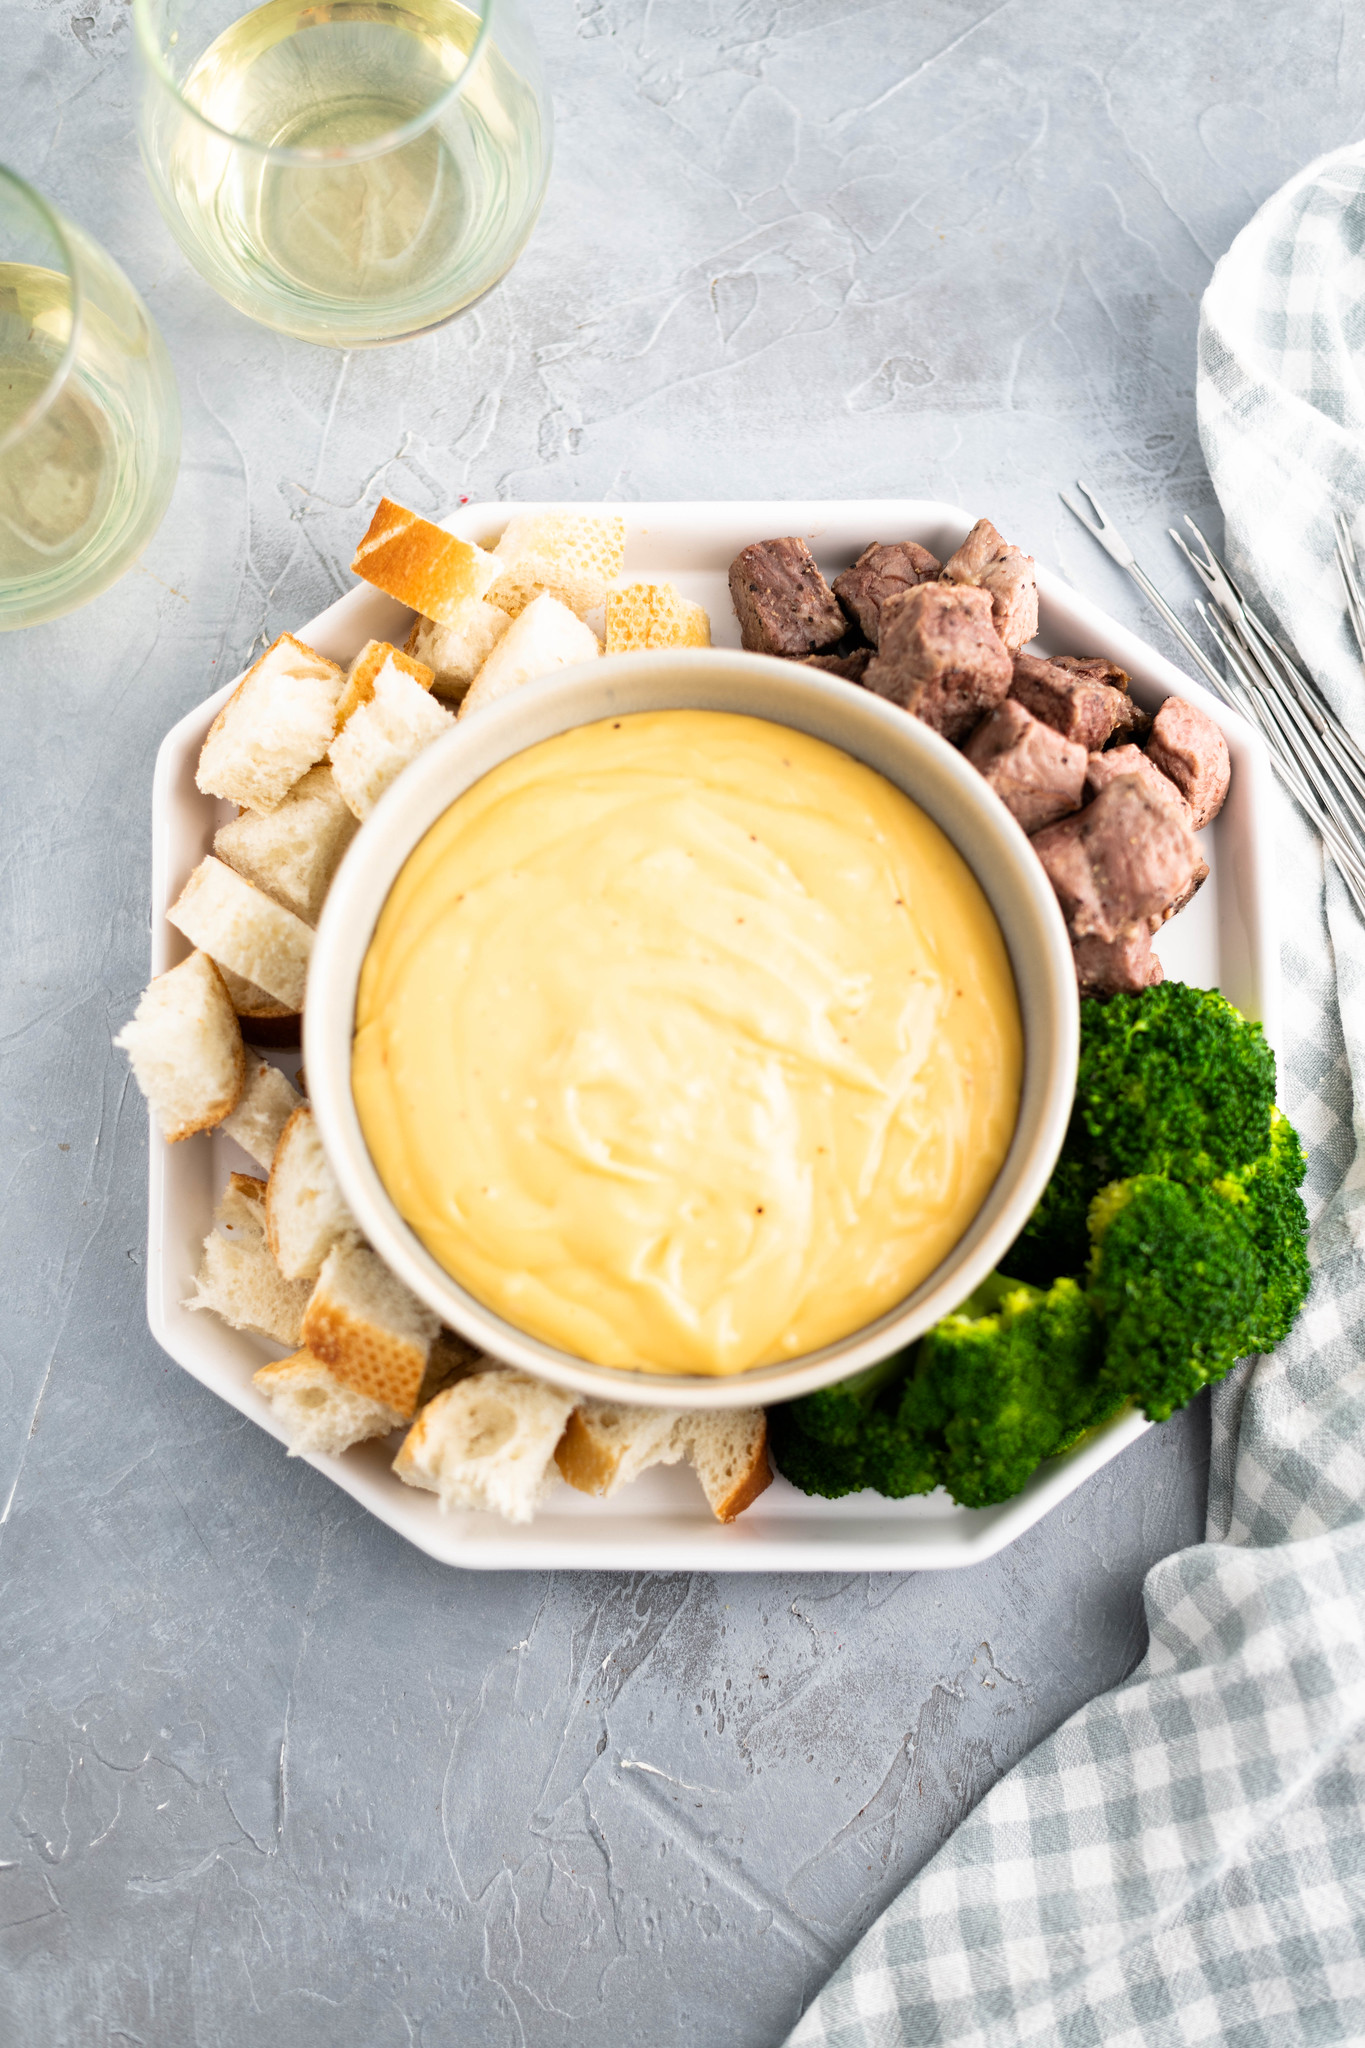 Whether for a party, a date night in or a celebration, this Three Cheese Fondue will be a big hit. Packed with sharp cheddar, smoked gouda and sharp parmesan cheeses and served with delicious dippers.